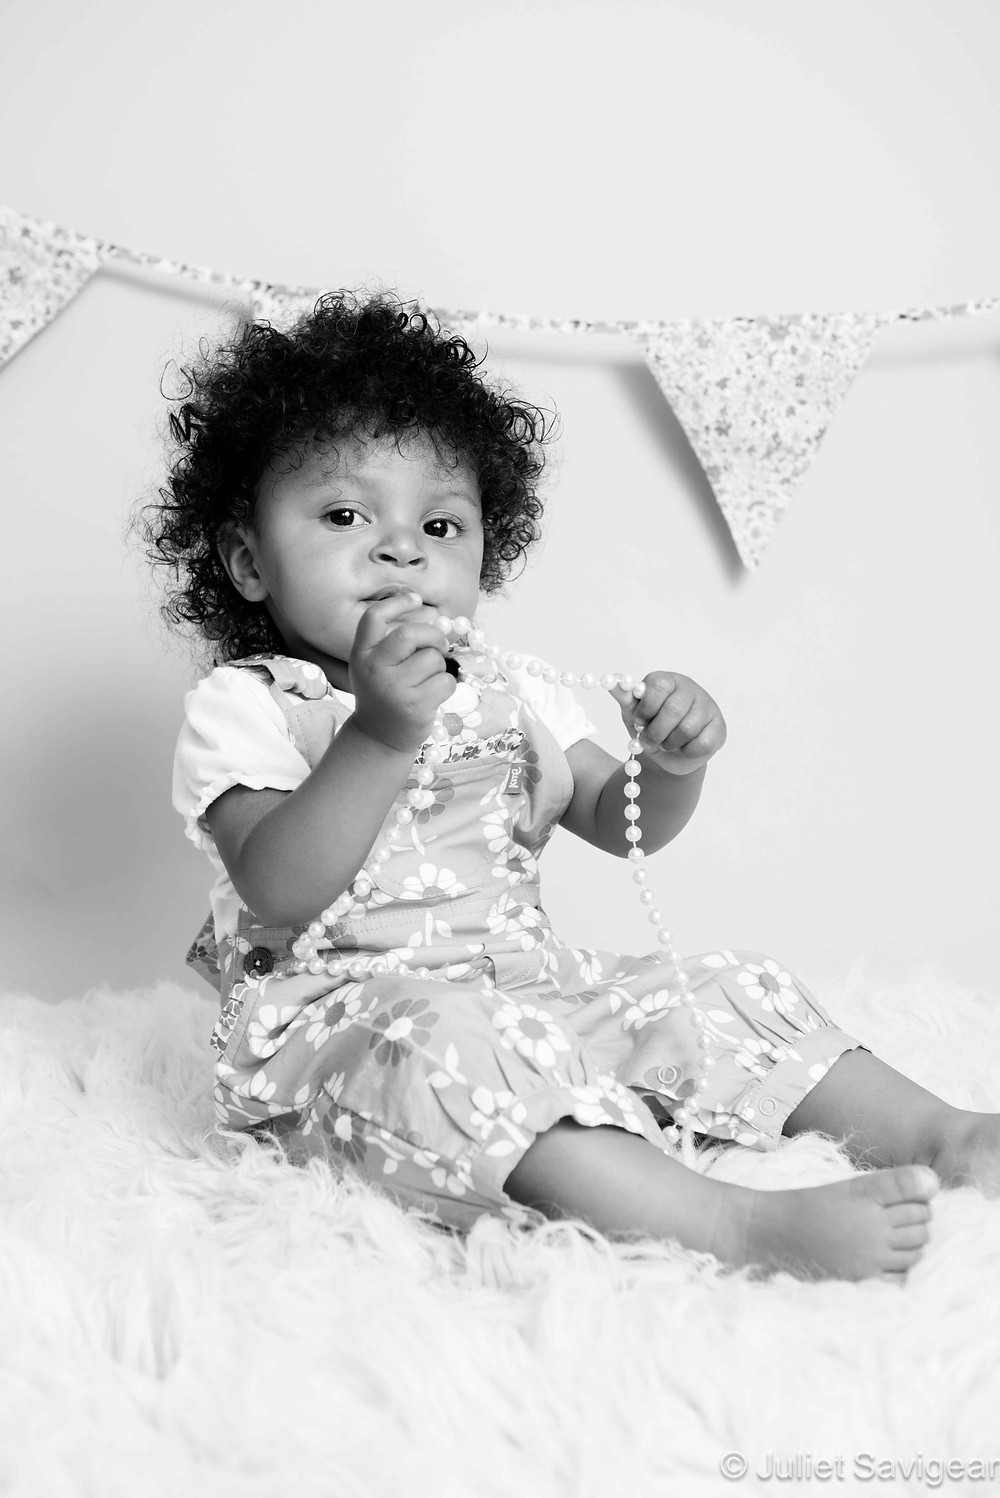 Pearls - Toddler Photography, Surrey Quays, London, SE16